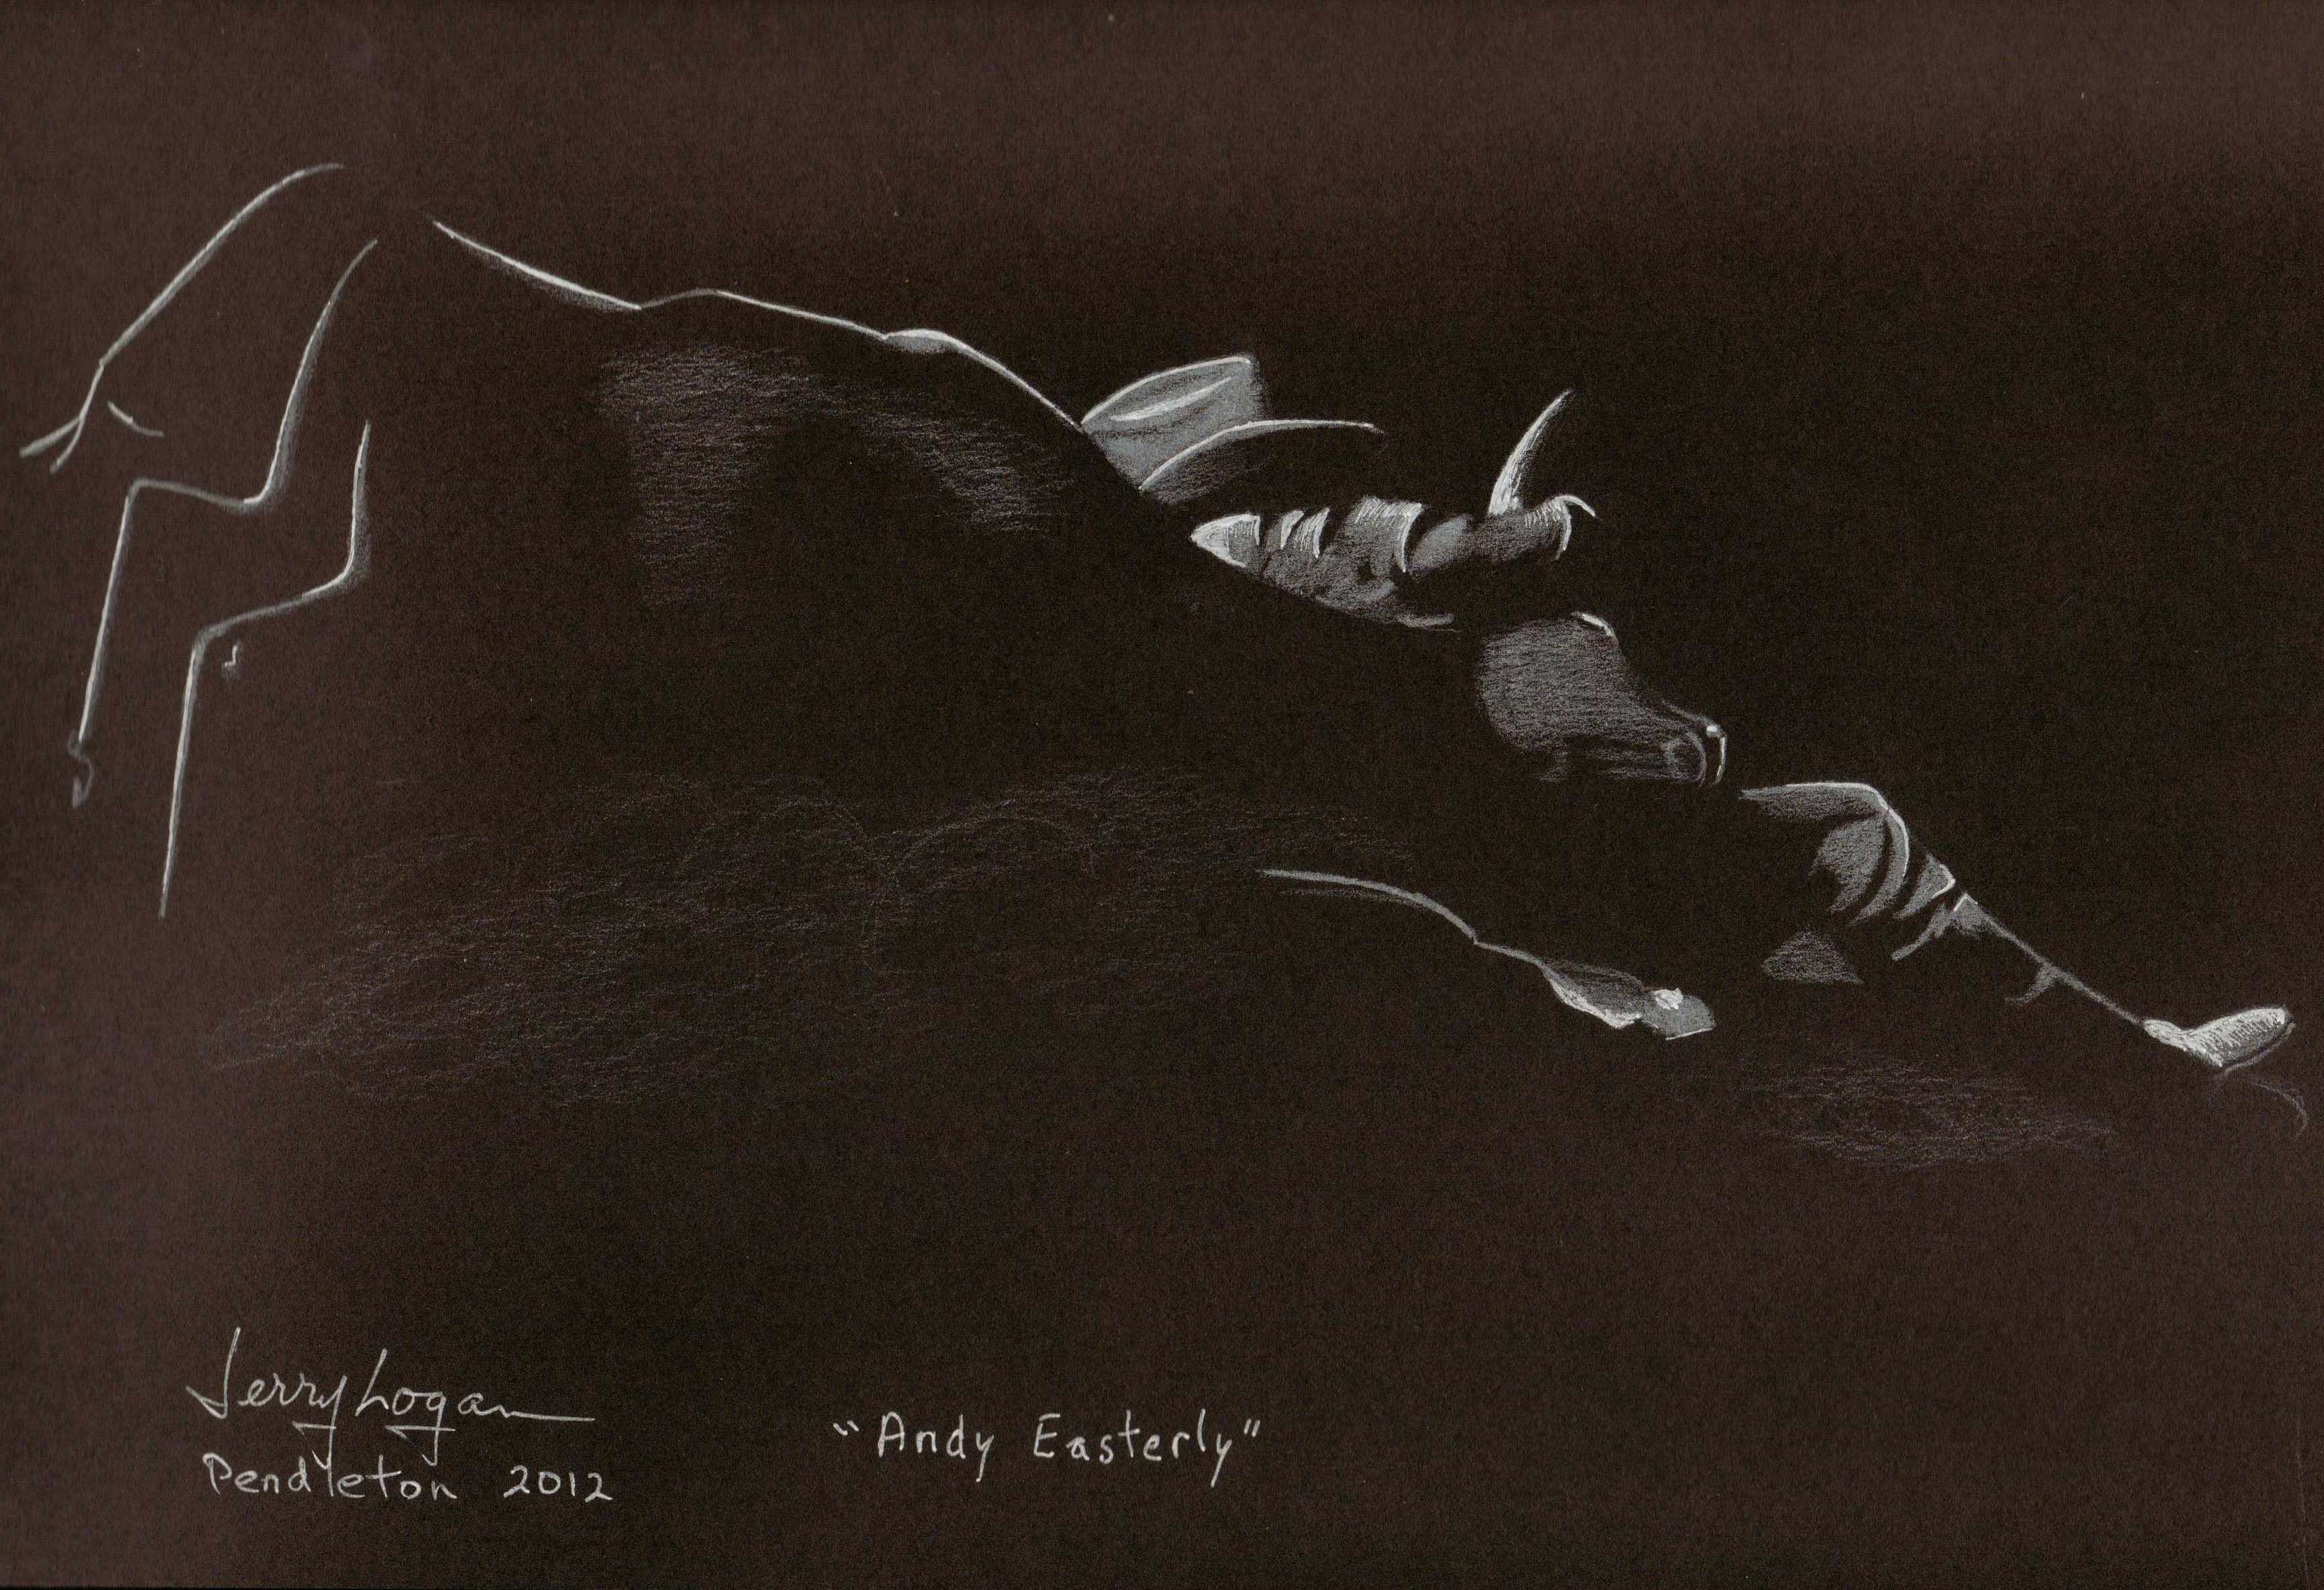 Andy Easterly.  White pencil on black paper.